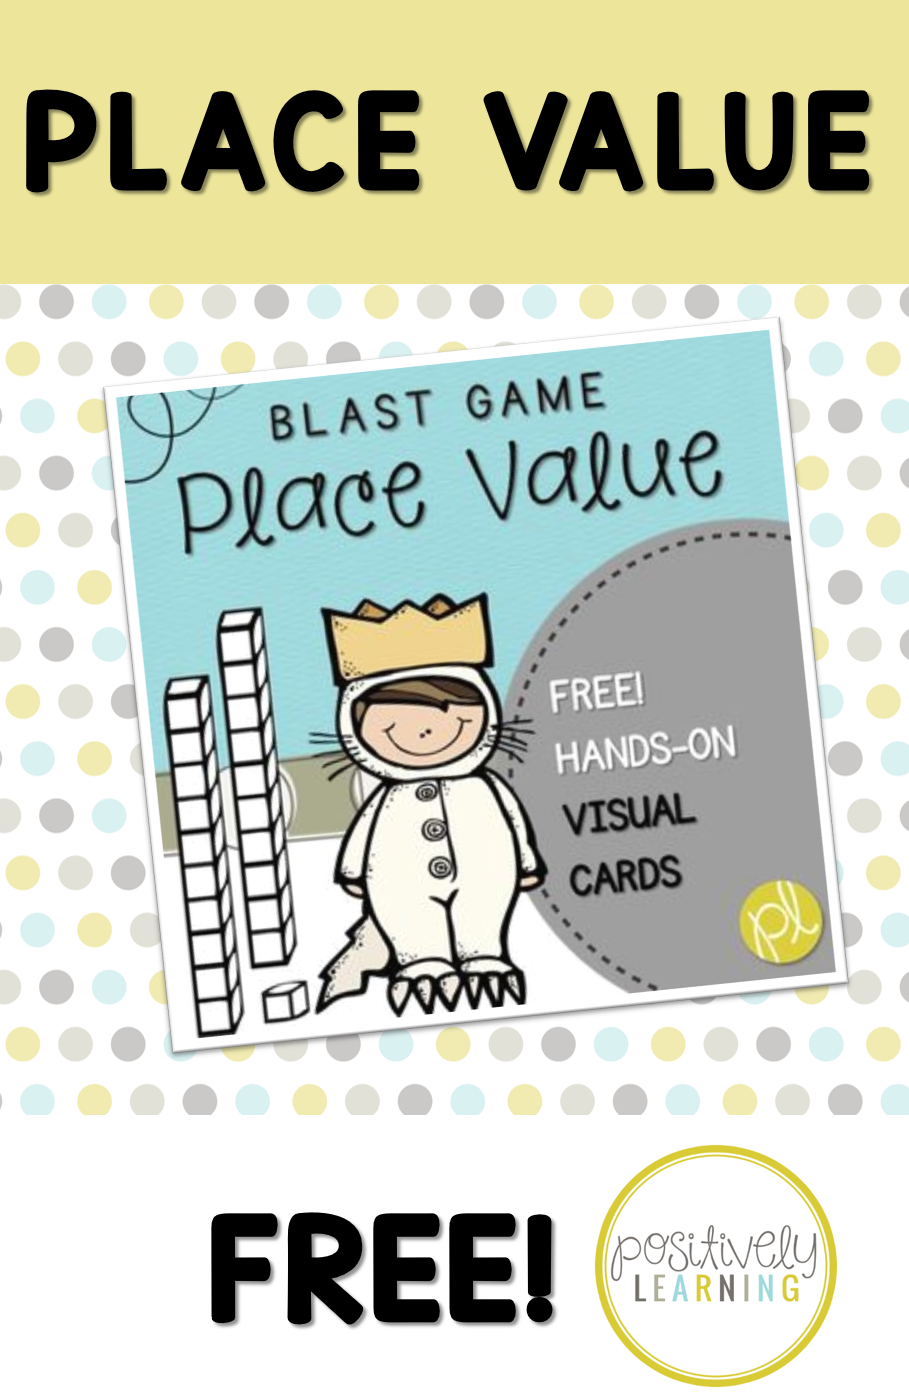 Free Place Value Game for small groups or Guided Math centers from Positively Learning Blog